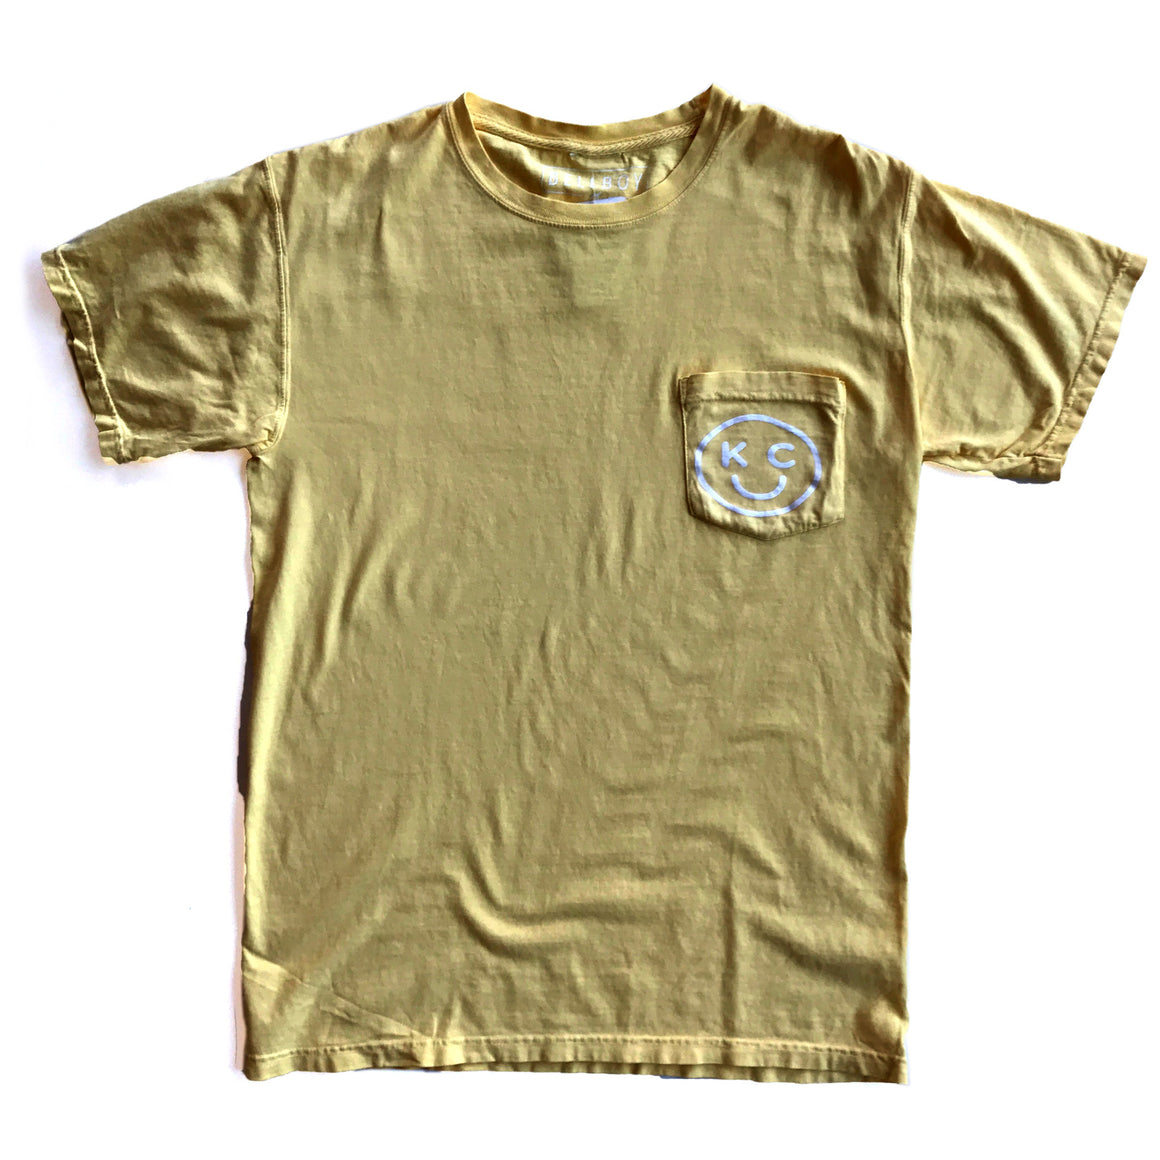 BELLBOY | KC SMILEY POCKET T-SHIRT - SUMMER SQUASH YELLOW